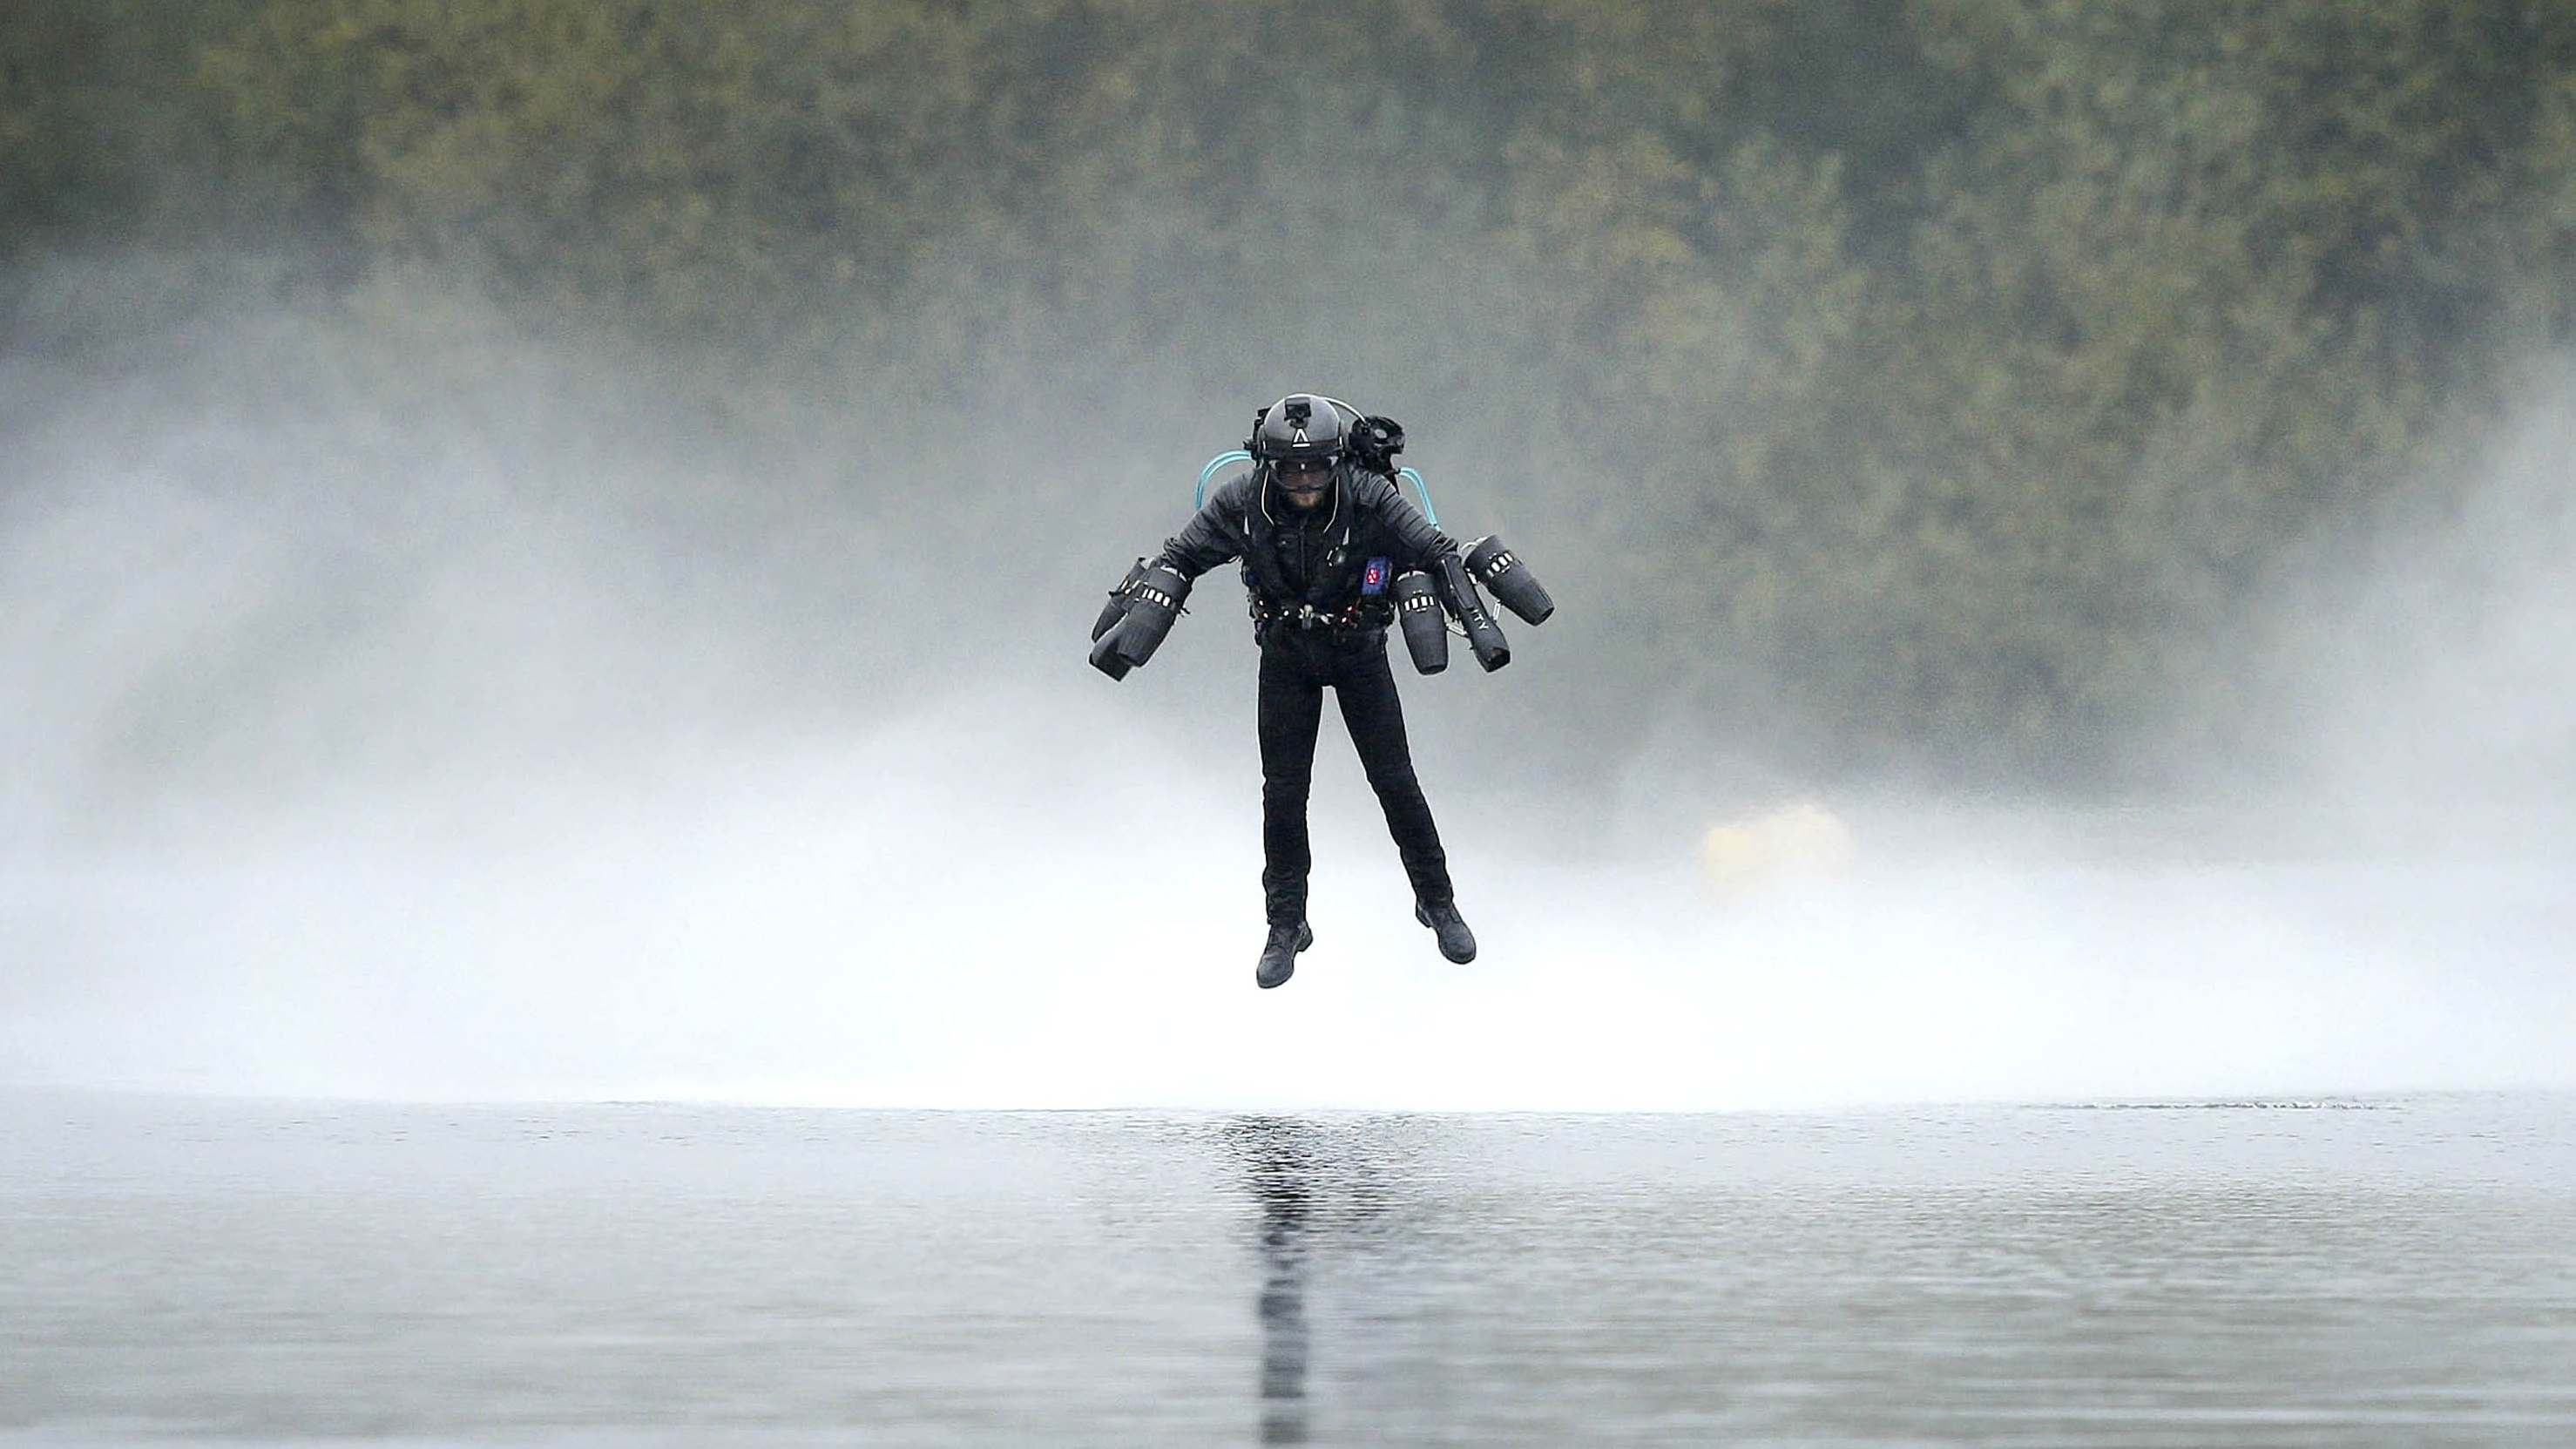 Richard Browning sets the Guinness World Record for the fastest speed in a body-controlled jet engine power suit (Matt Alexander/PA)